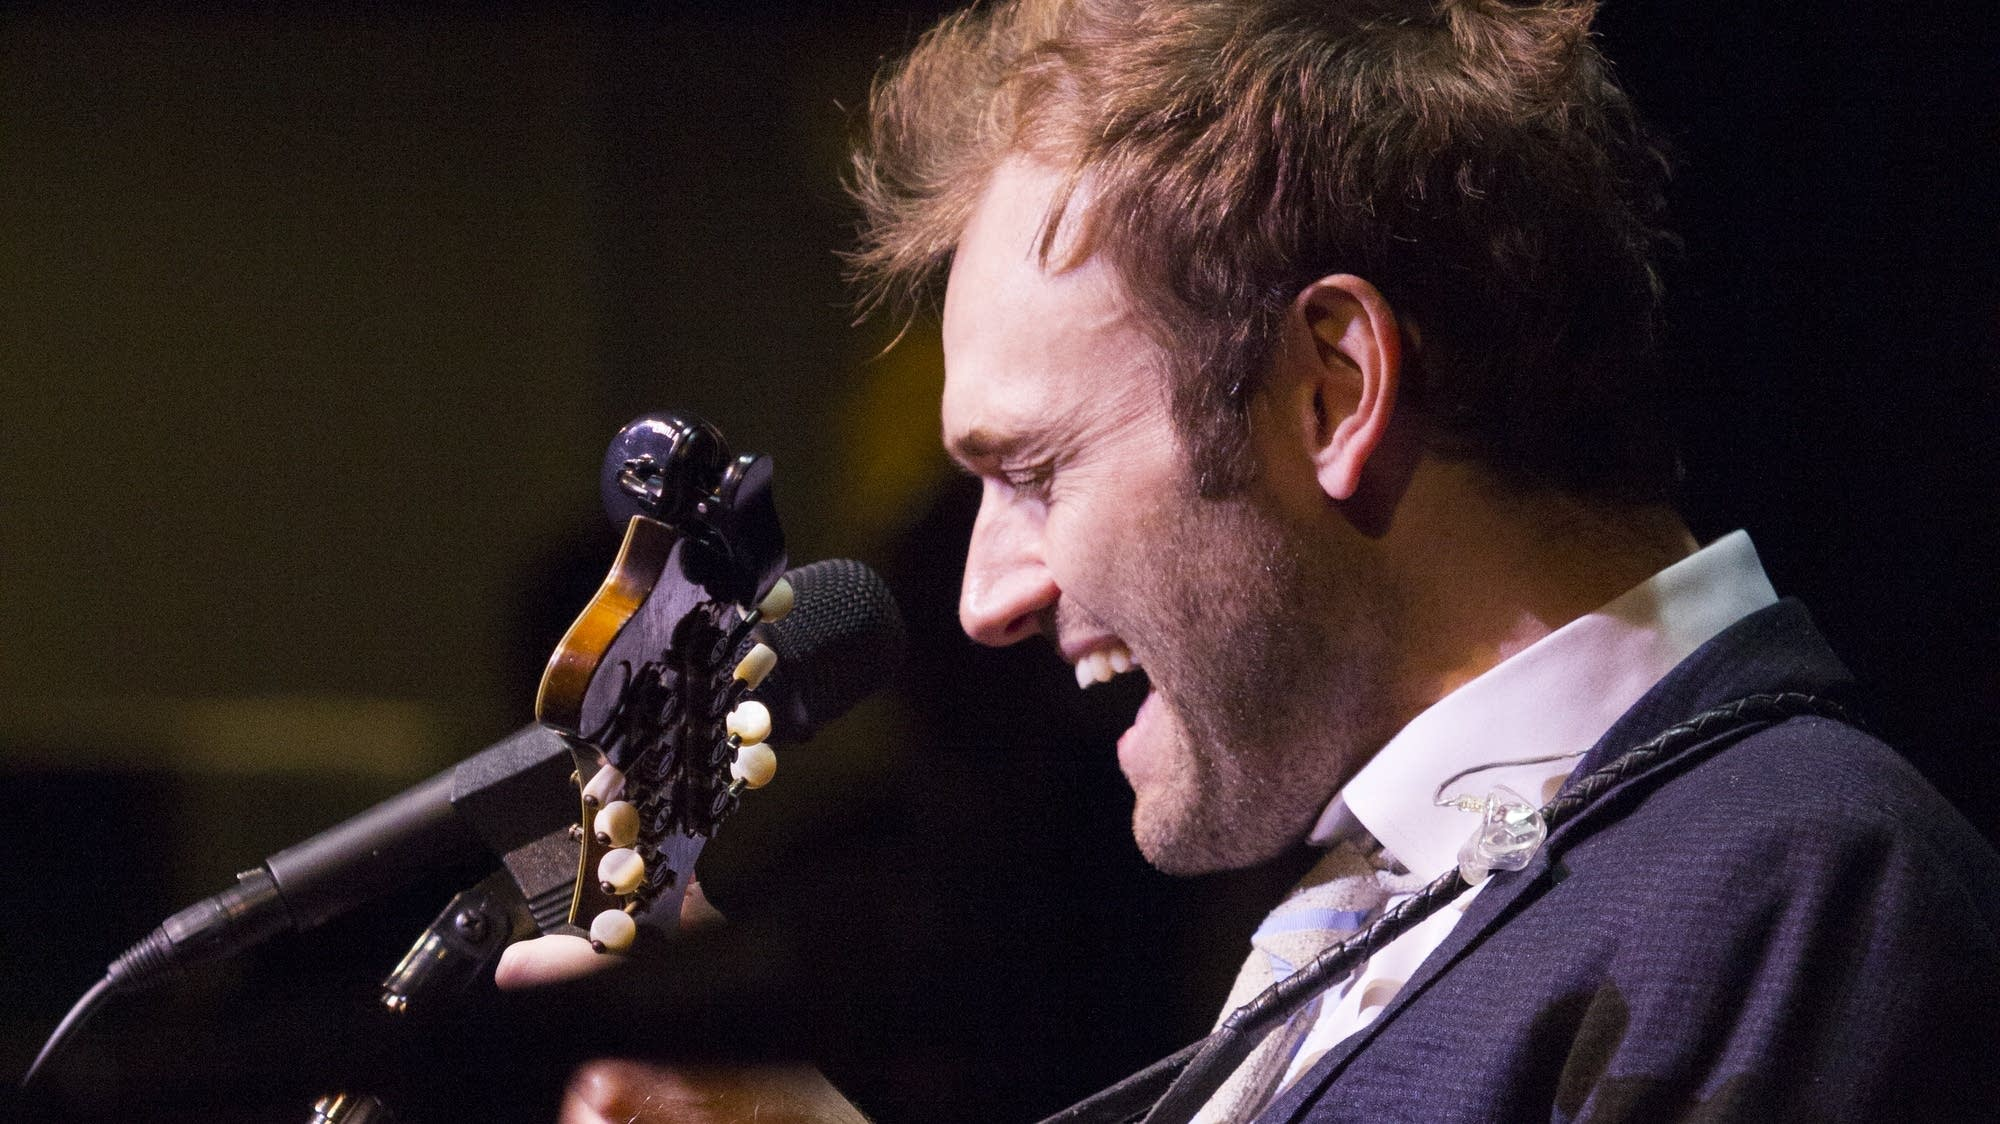 Our Host: Chris Thile